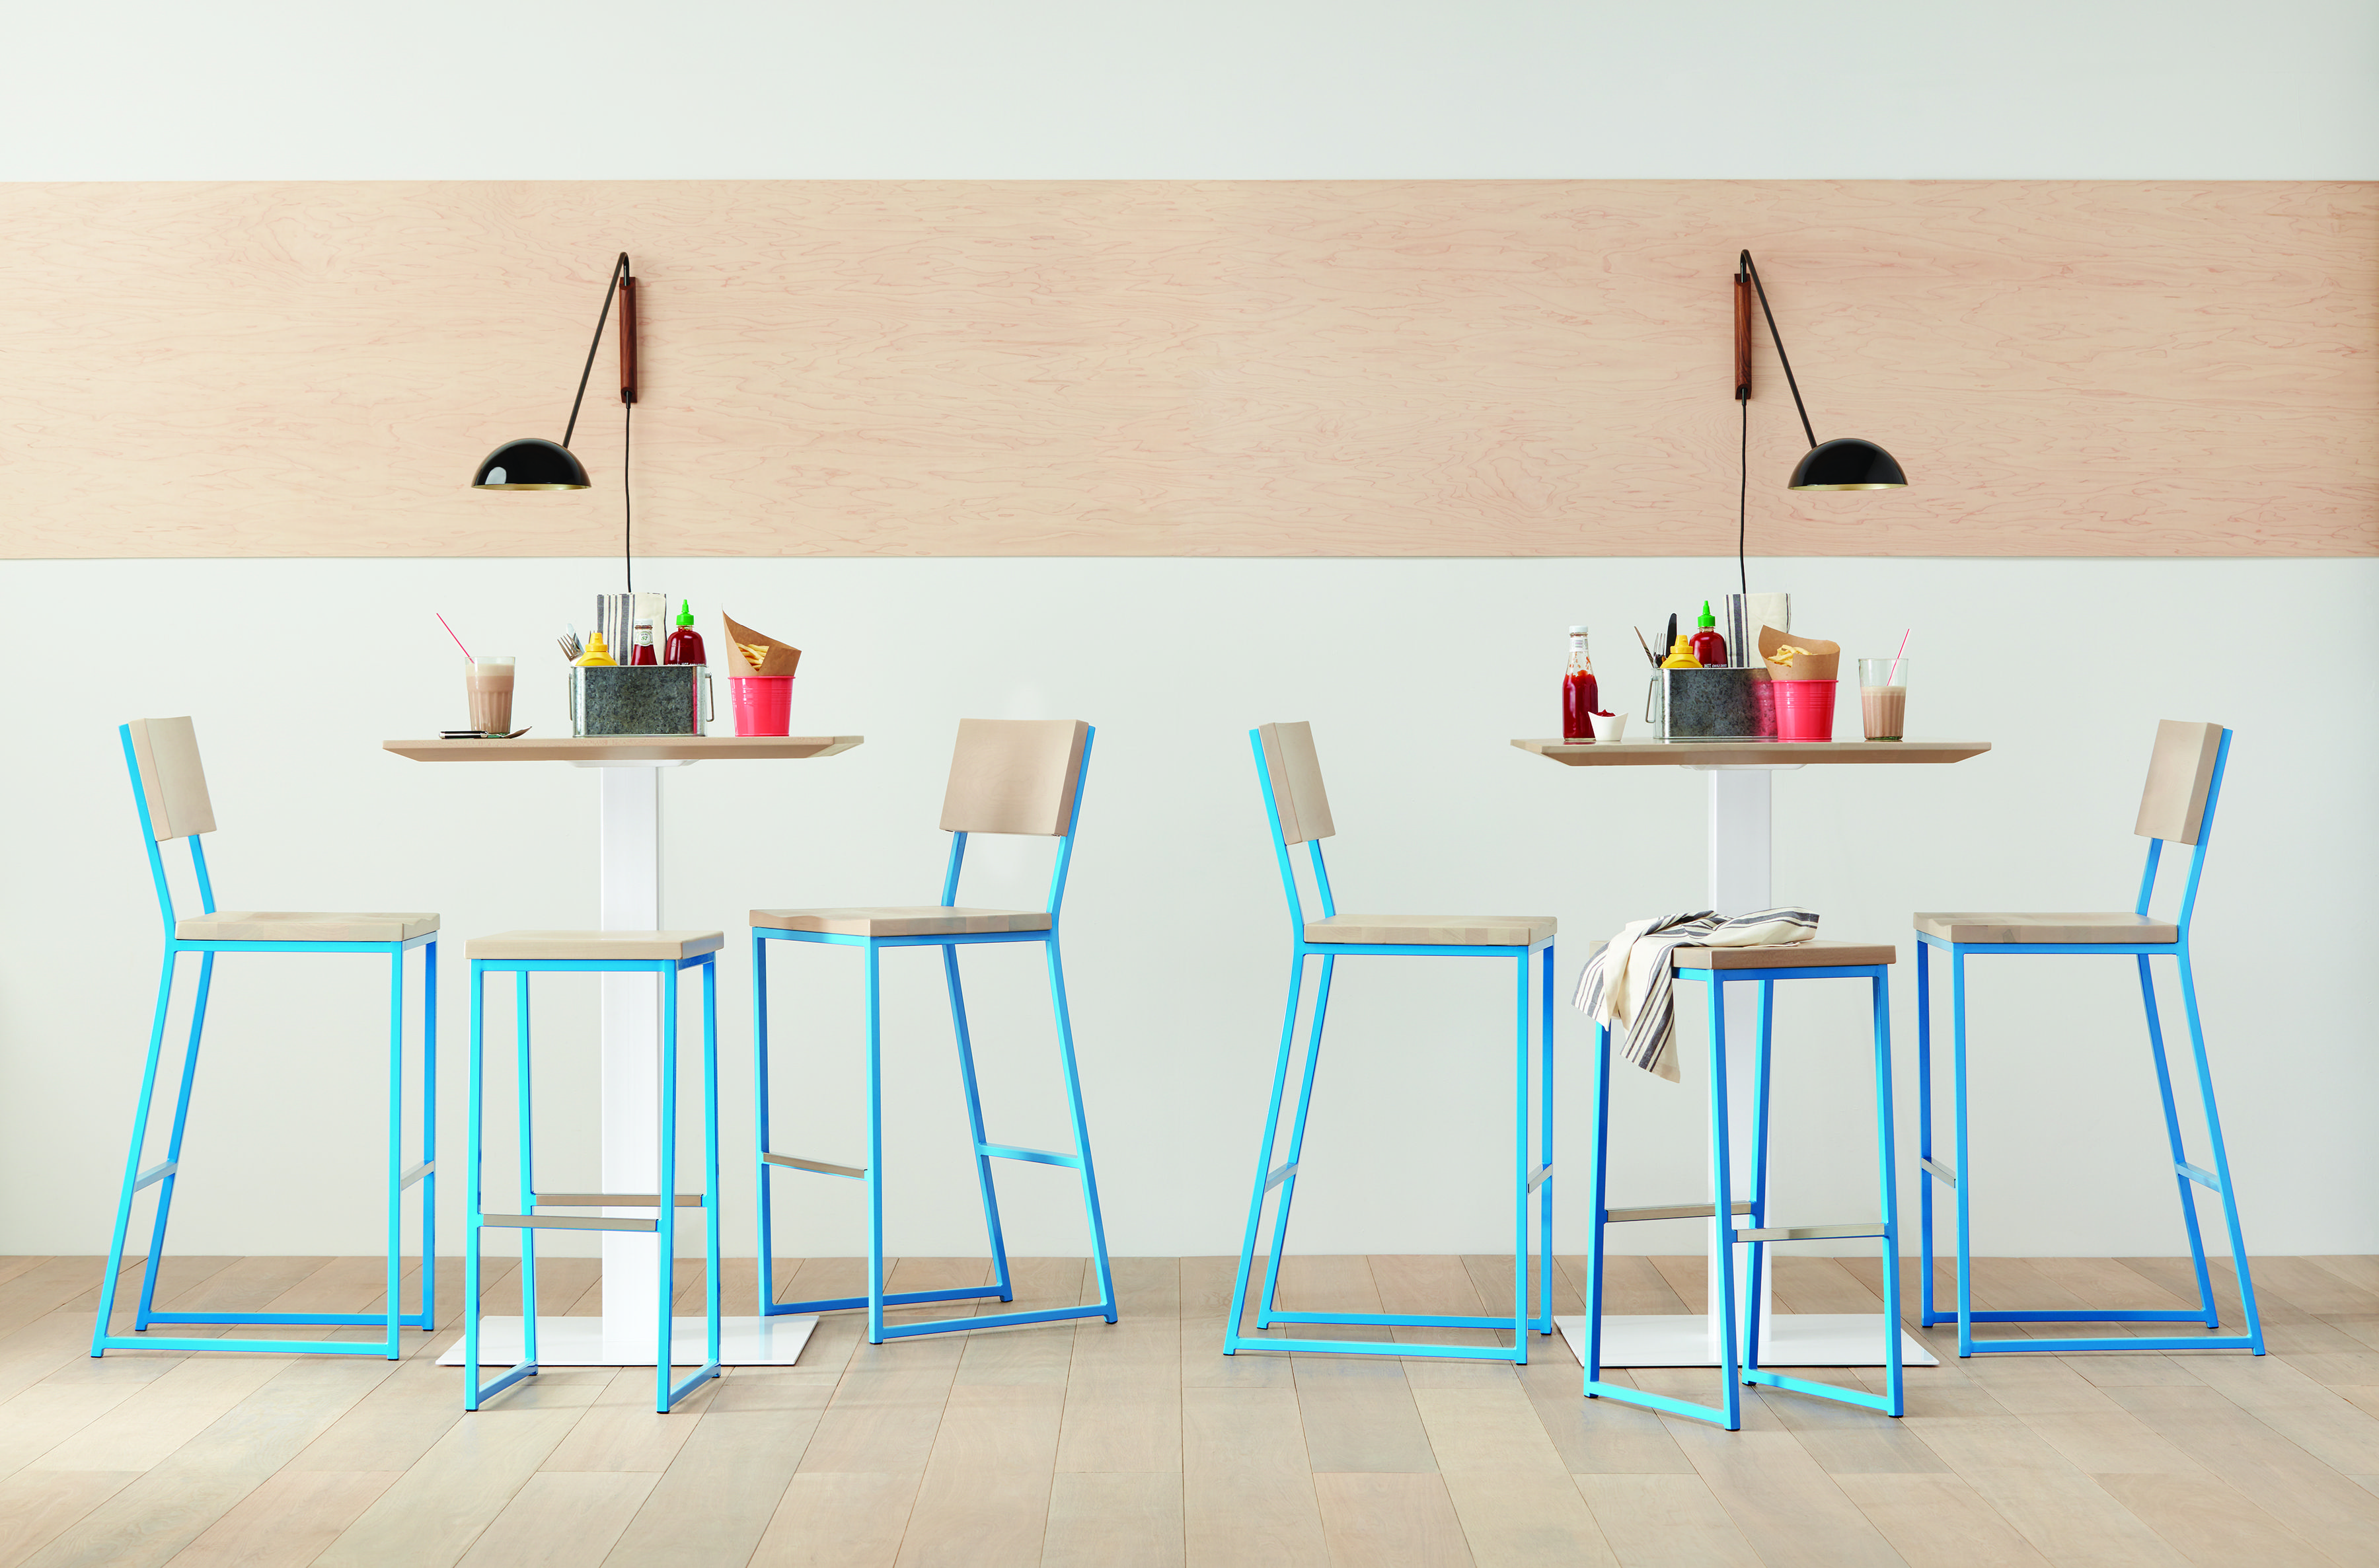 Restaurant Furniture Trends, Low Bar Stools Add Functionality And Convenience